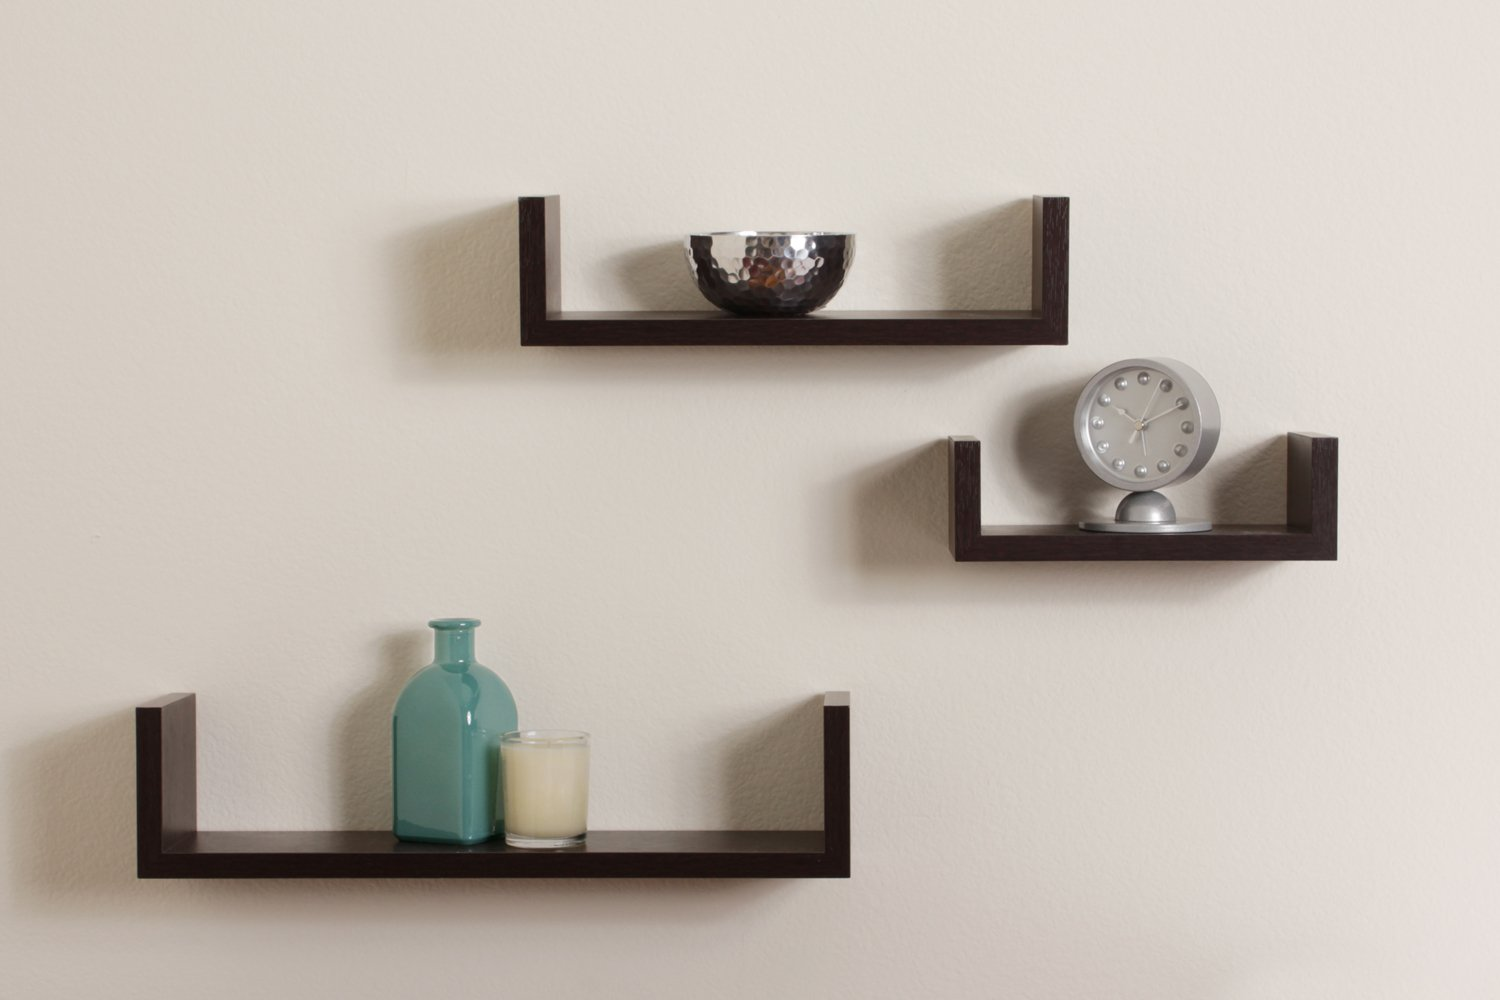 Amazoncom Danya B XF11039 Set of 3 Floating U Shelves Finish